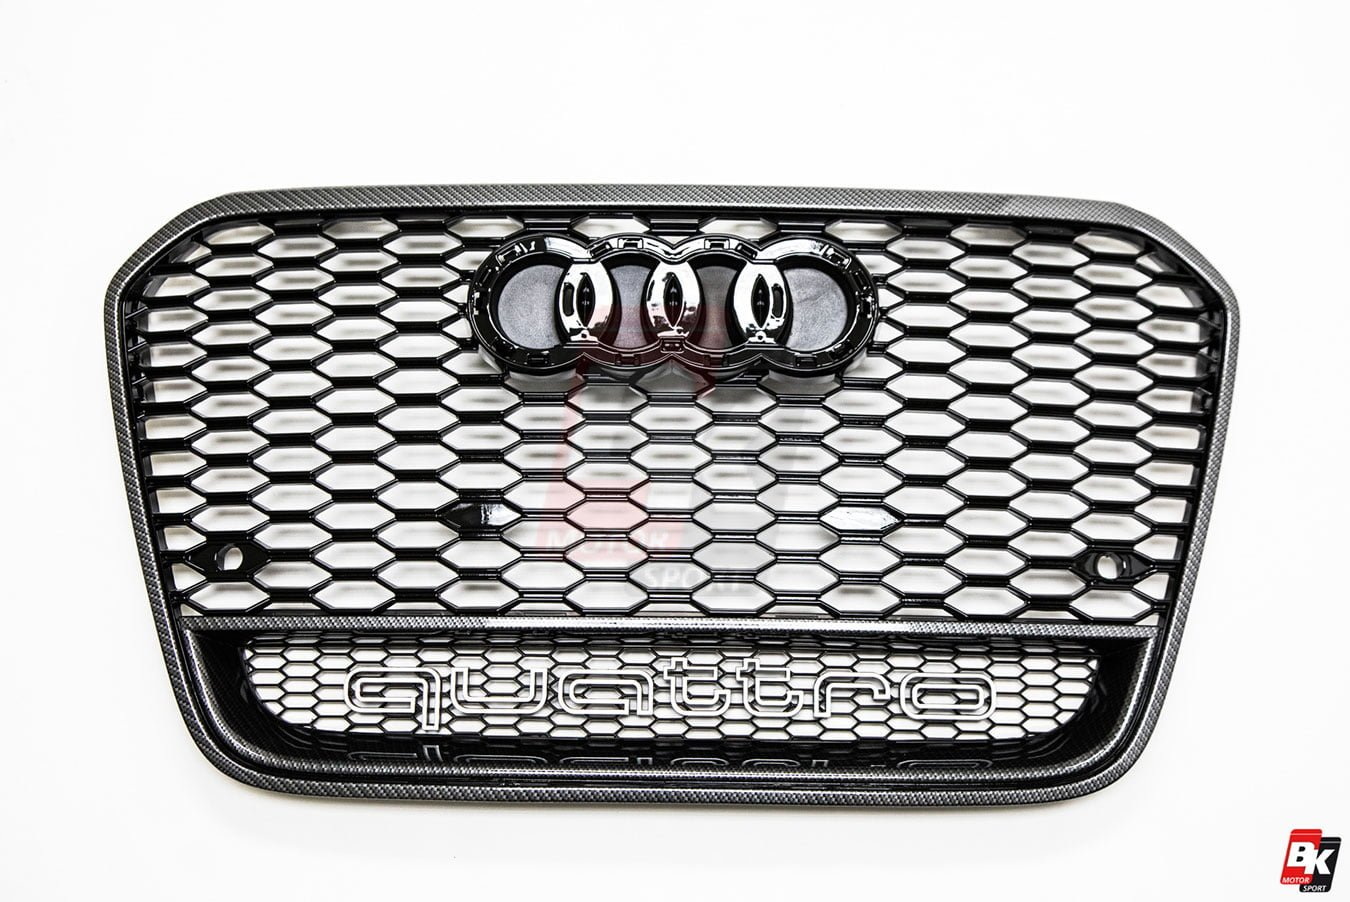 BKM Front Bumper Kit with Front Grille and Rear Diffuser (RS Style - Carbon), fits Audi A6 C7.0